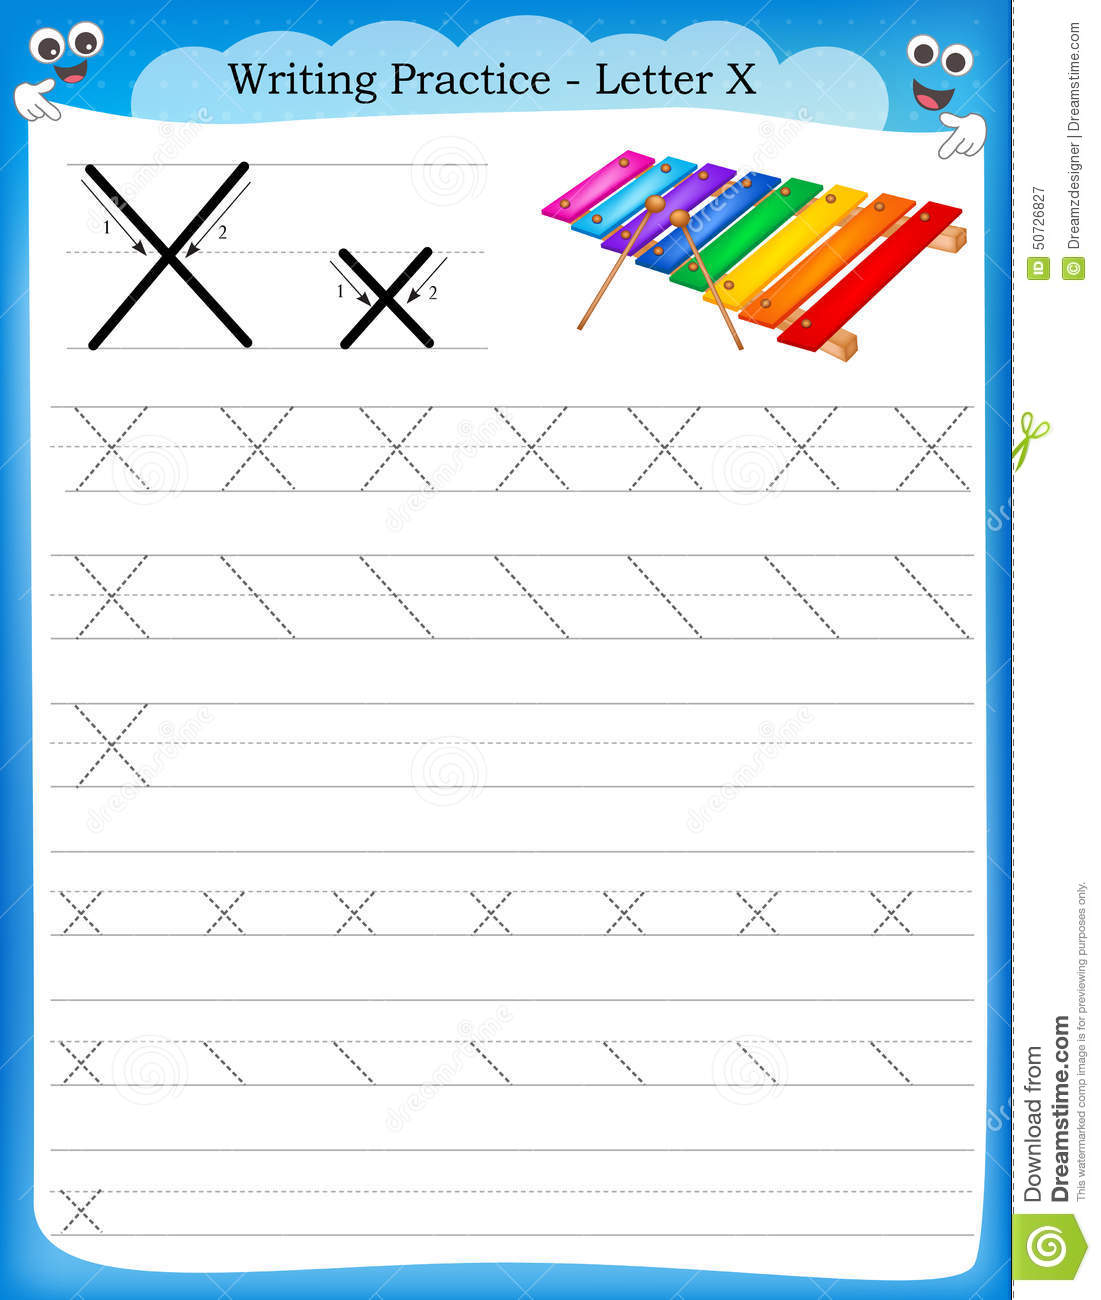 Writing practice letter X printable worksheet with clip art for ...